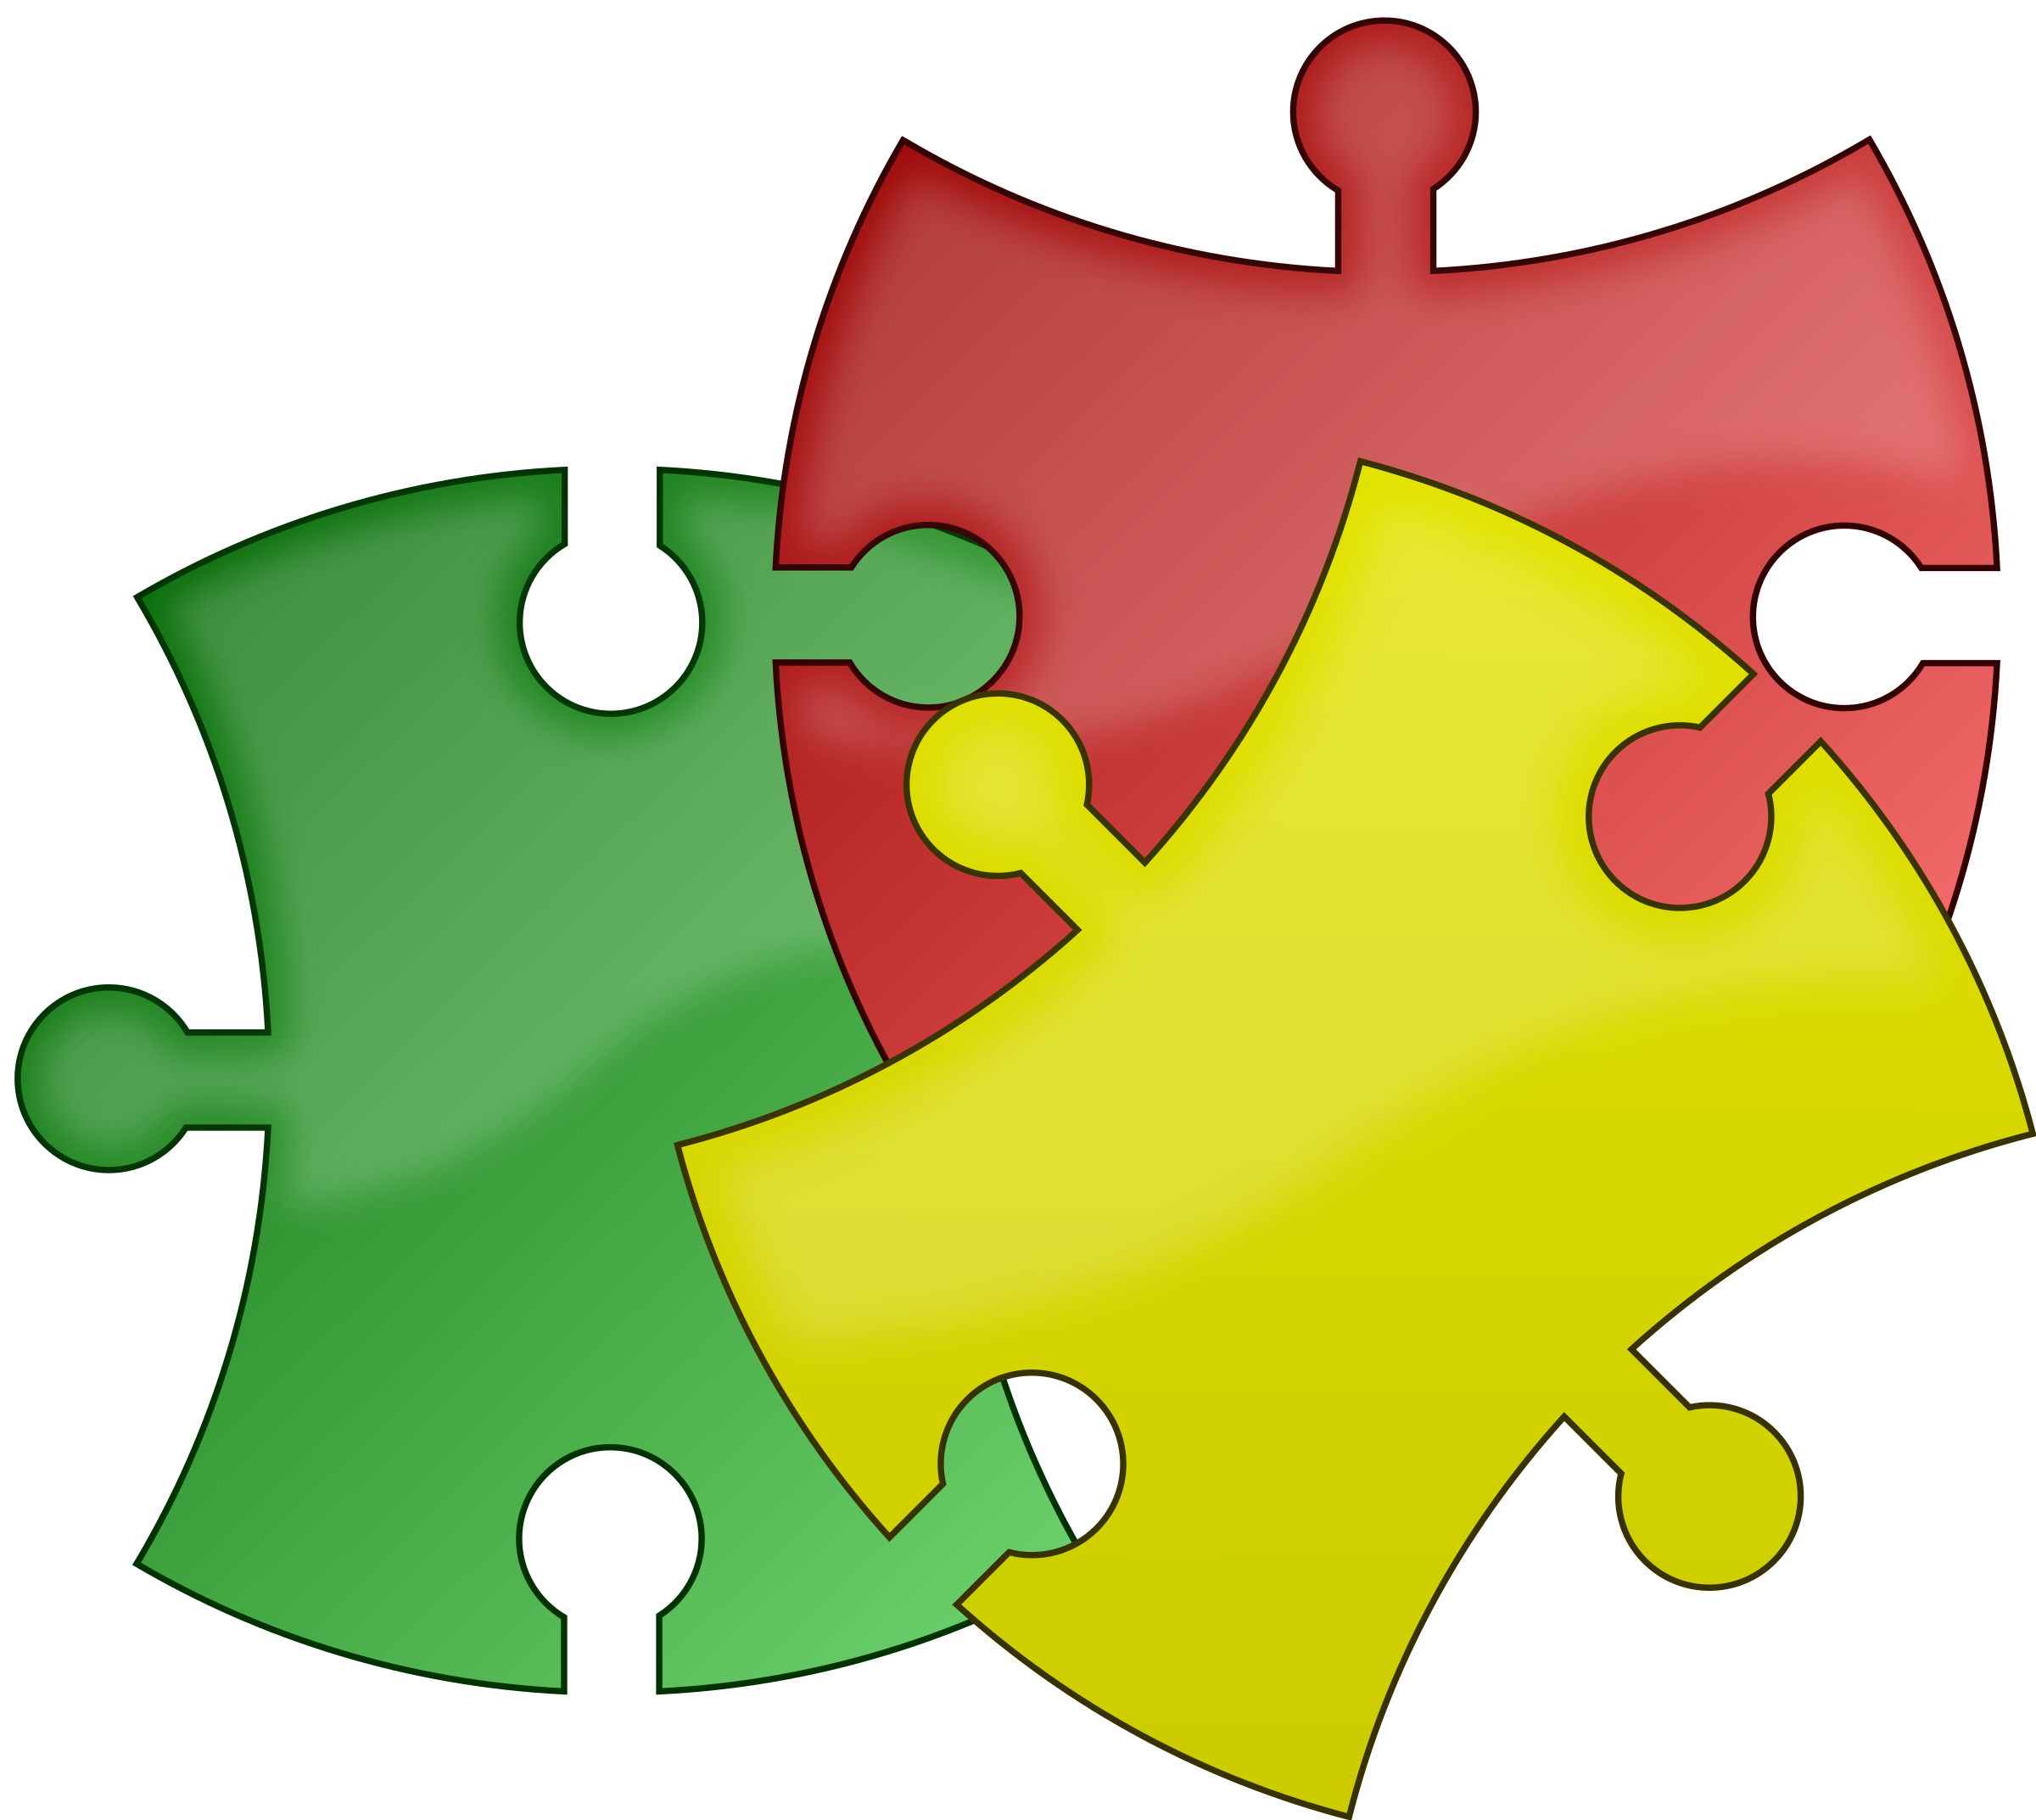 Puzzle clipart yellow. Big image png